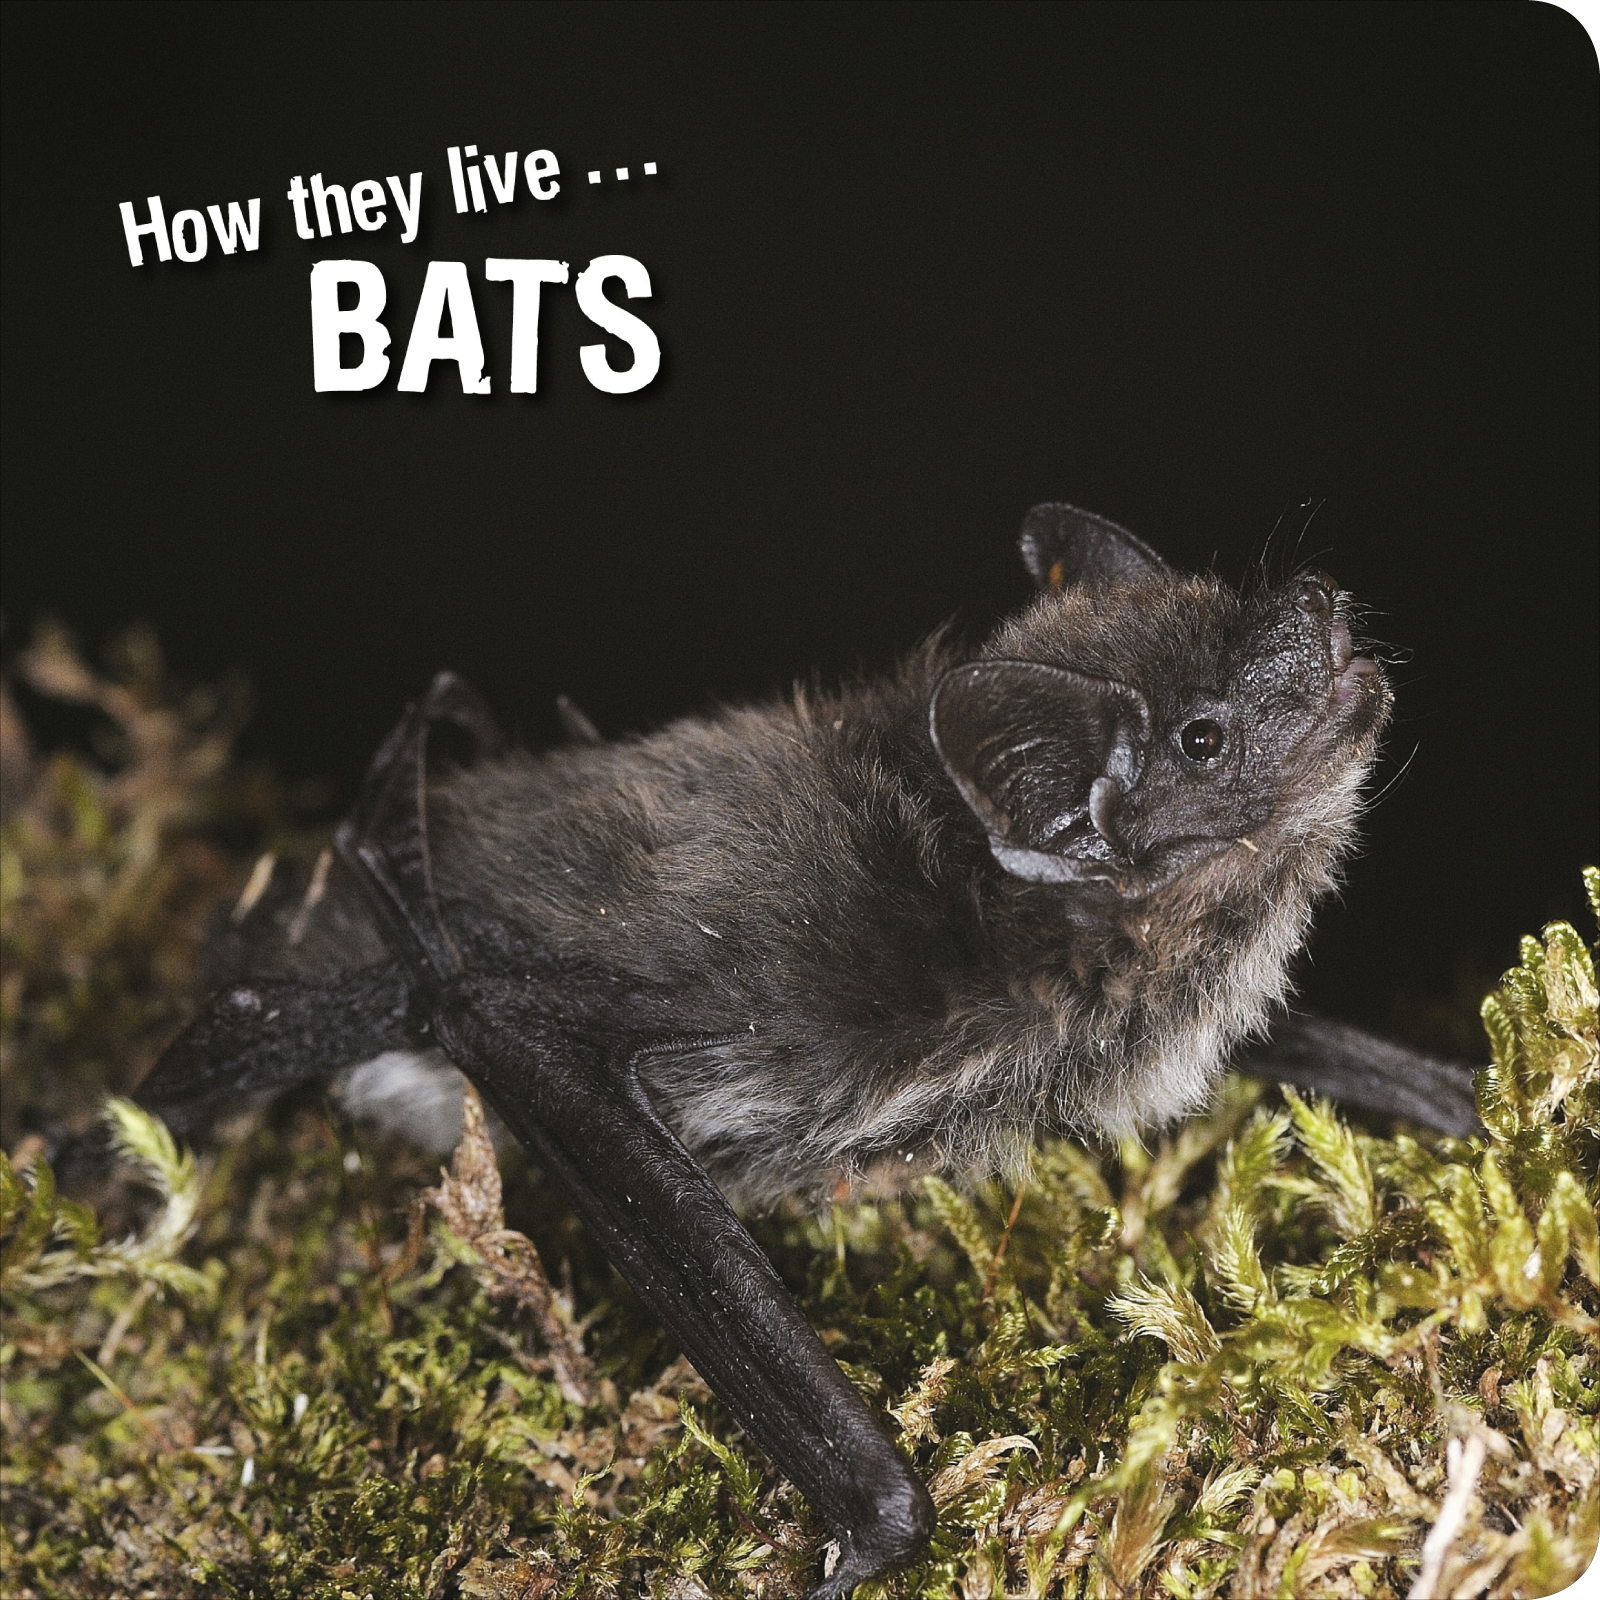 How they live... Bats